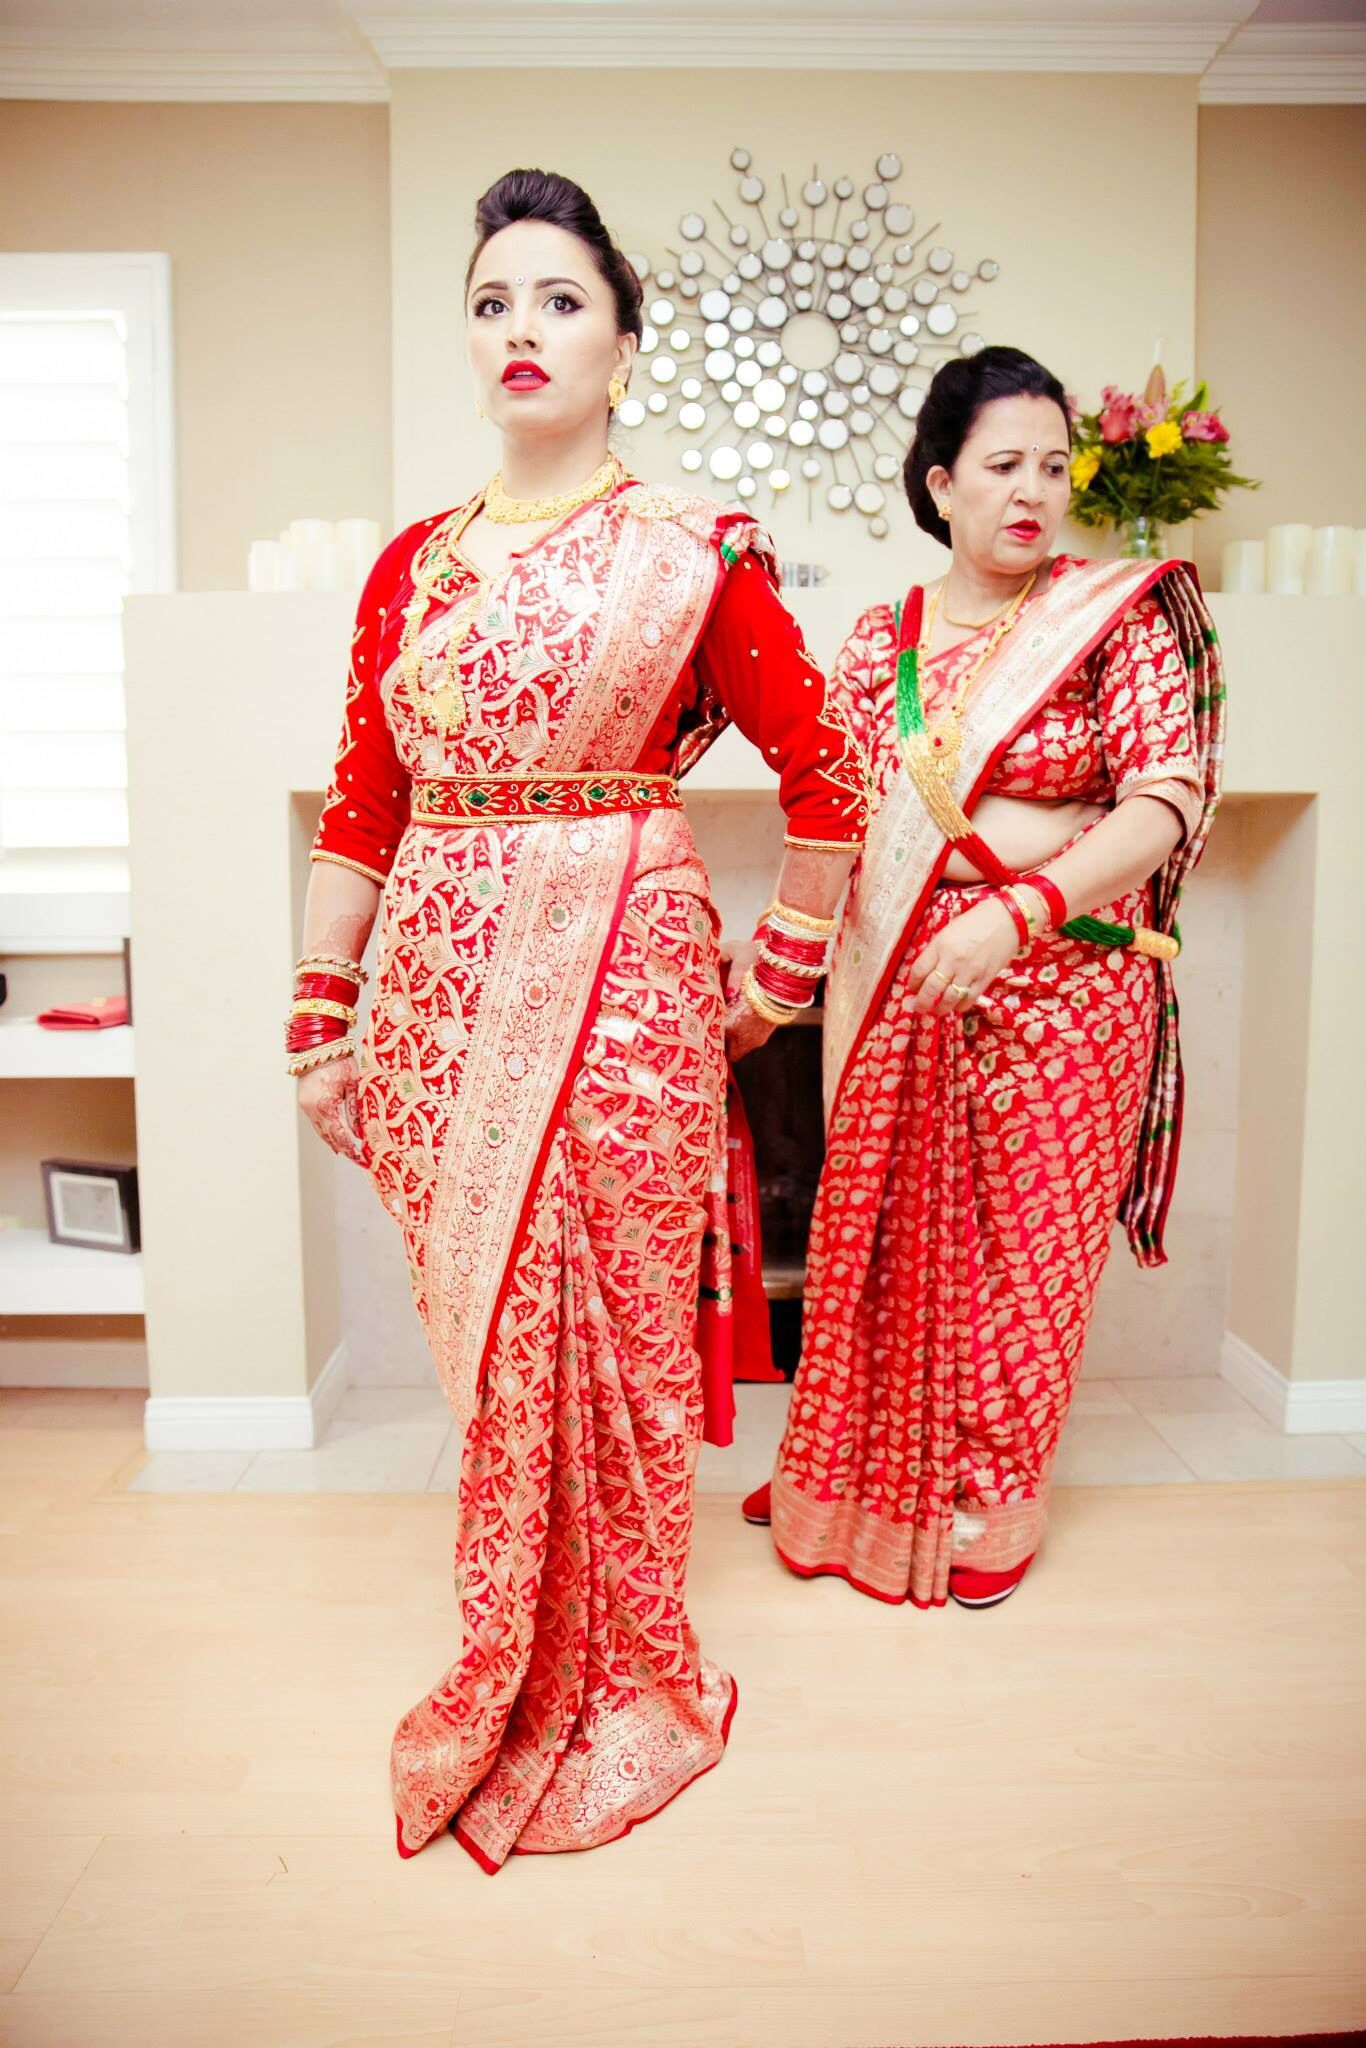 South asian wedding dresses  Mommy love wedding nepali southasian  My dream Nepali wedding